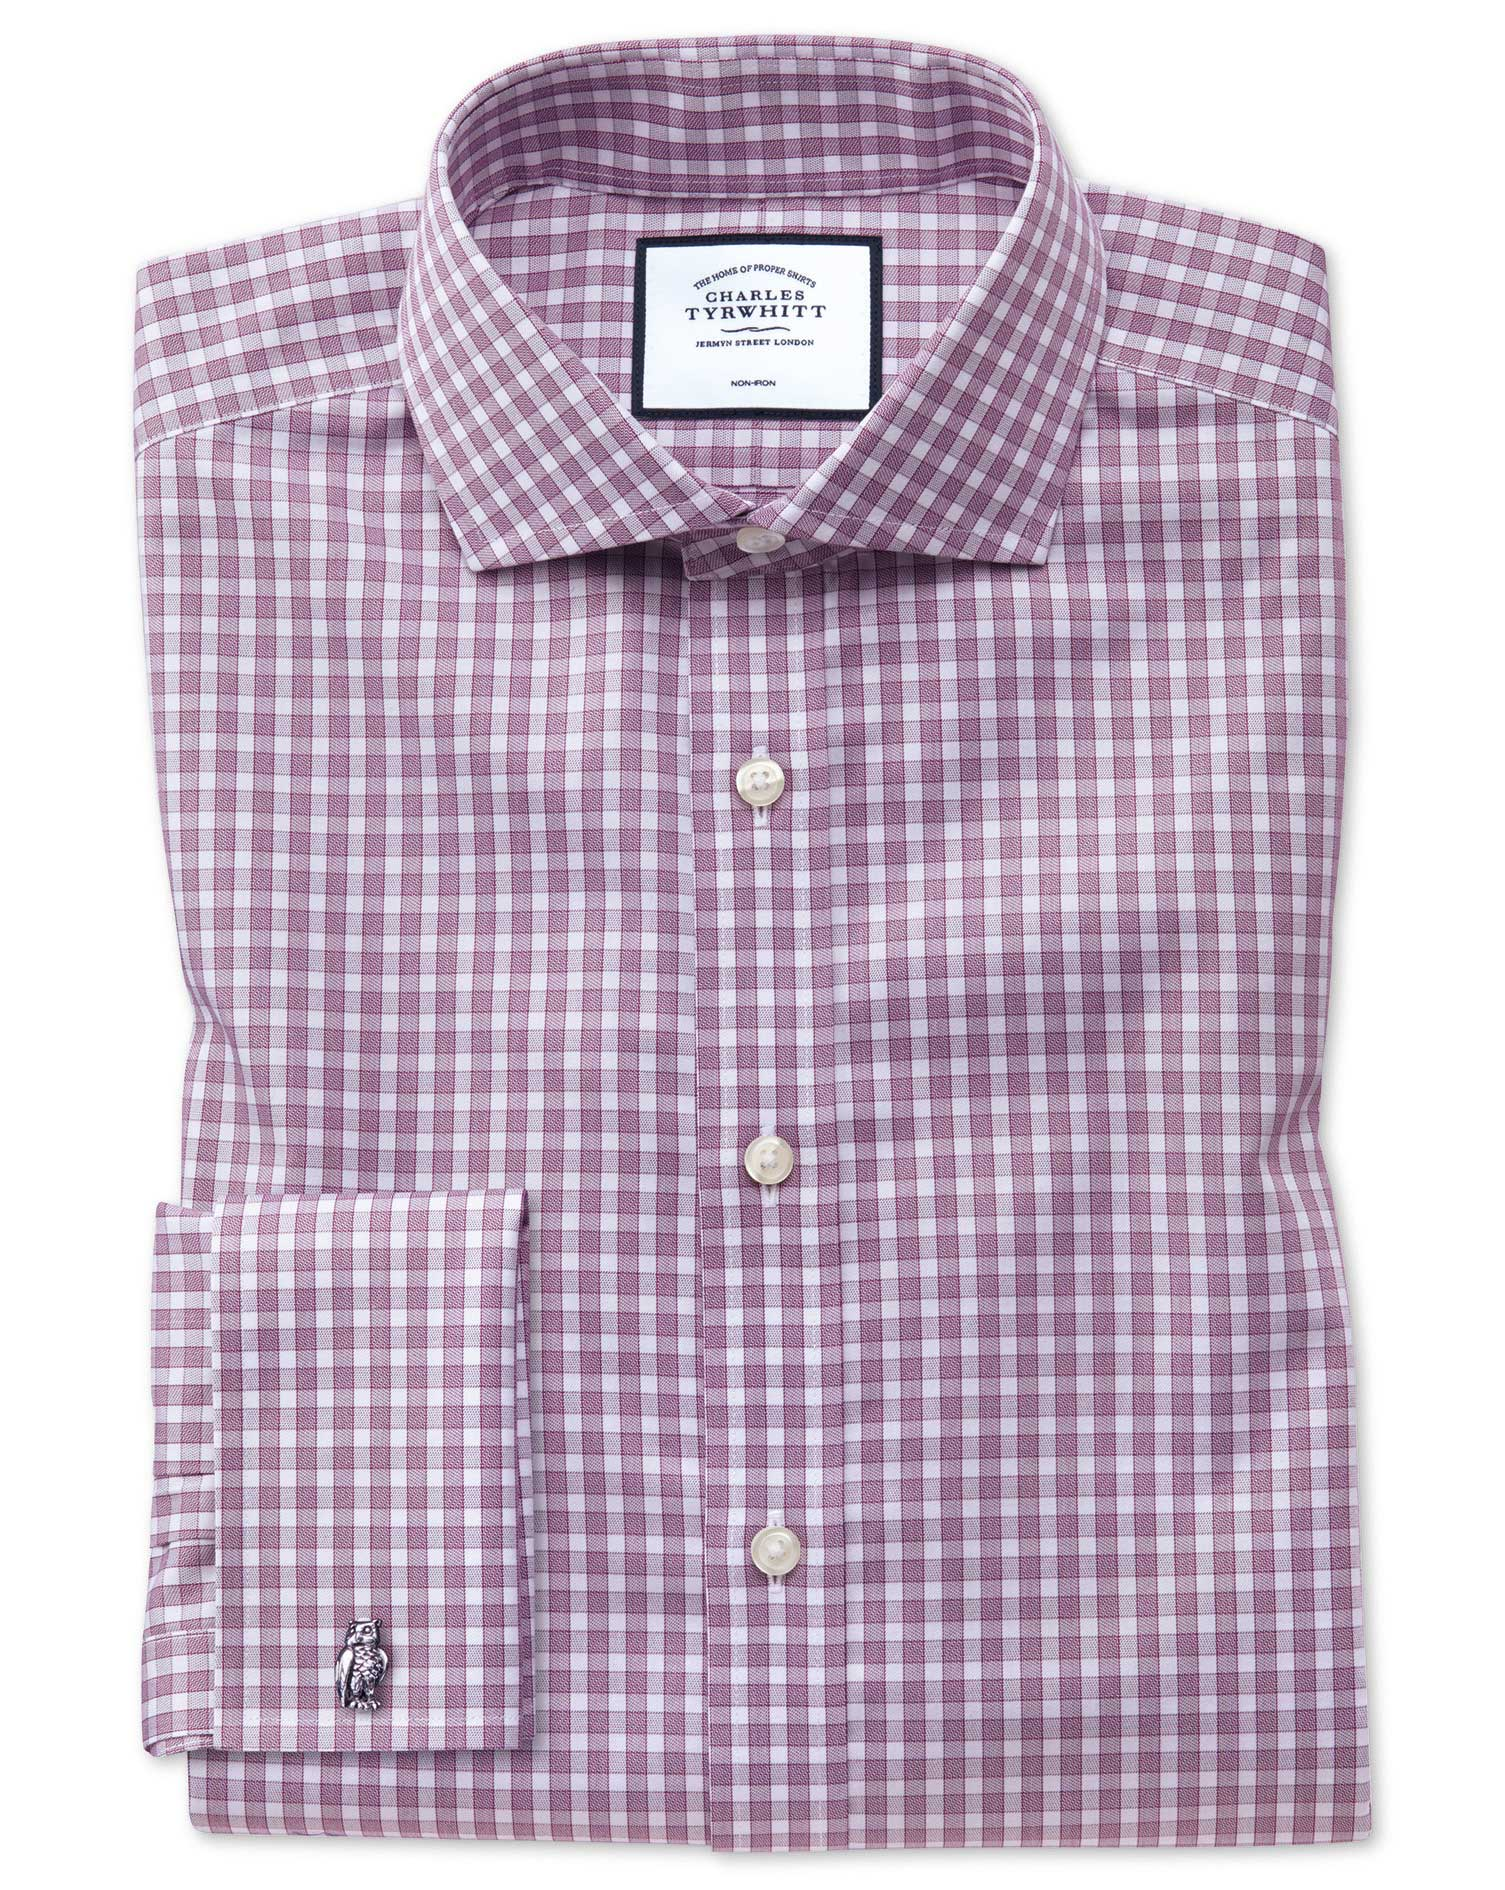 Extra Slim Fit Non-Iron Twill Gingham Berry Cotton Formal Shirt Single Cuff Size 14.5/32 by Charles